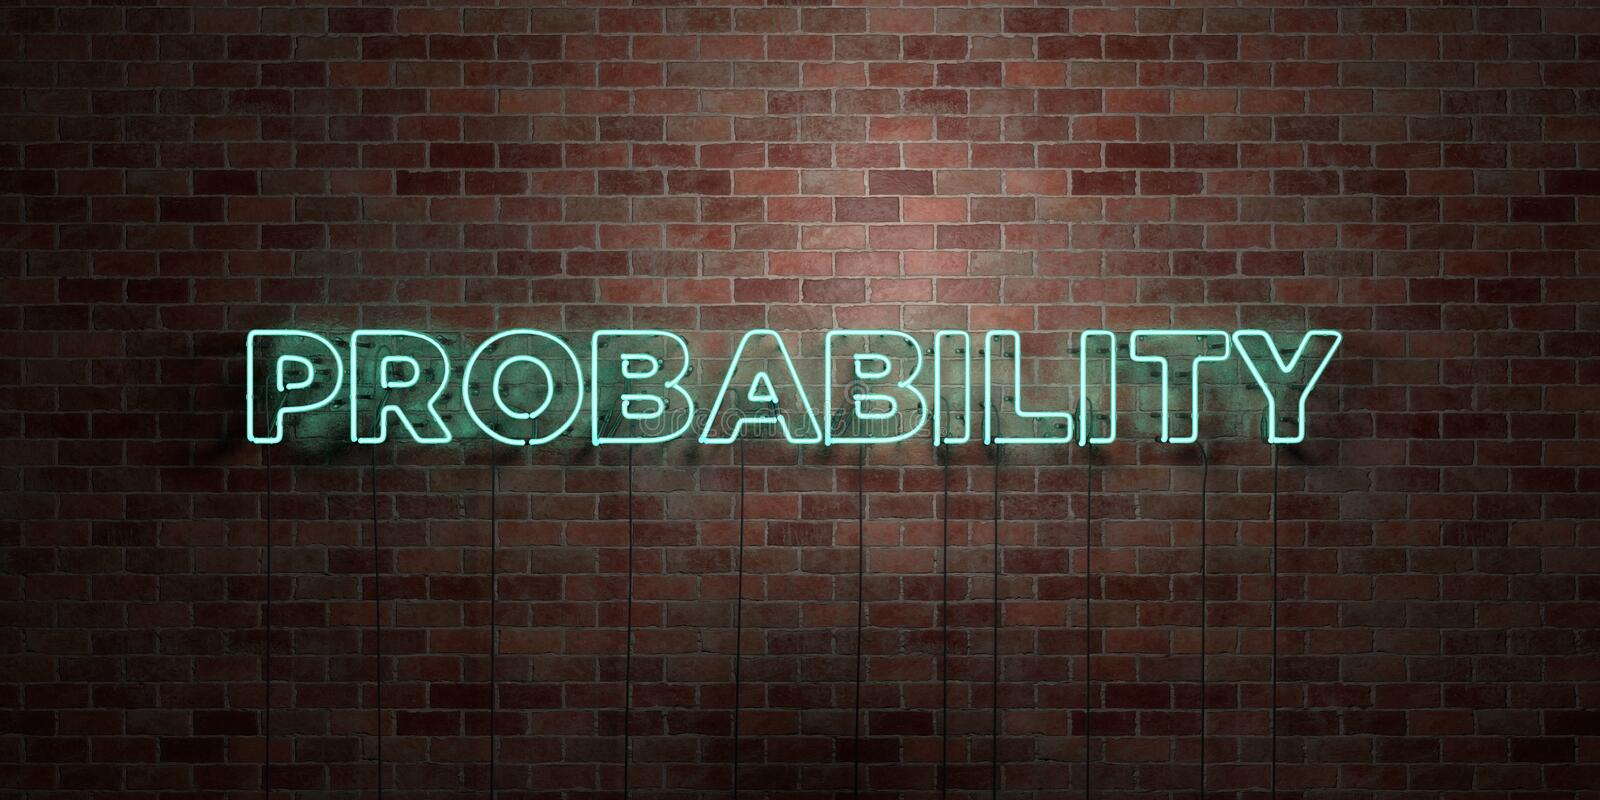 PROBABILITY - fluorescent Neon tube Sign on brickwork - Front view - 3D rendered royalty free stock picture. Can be used for online banner ads and direct vector illustration